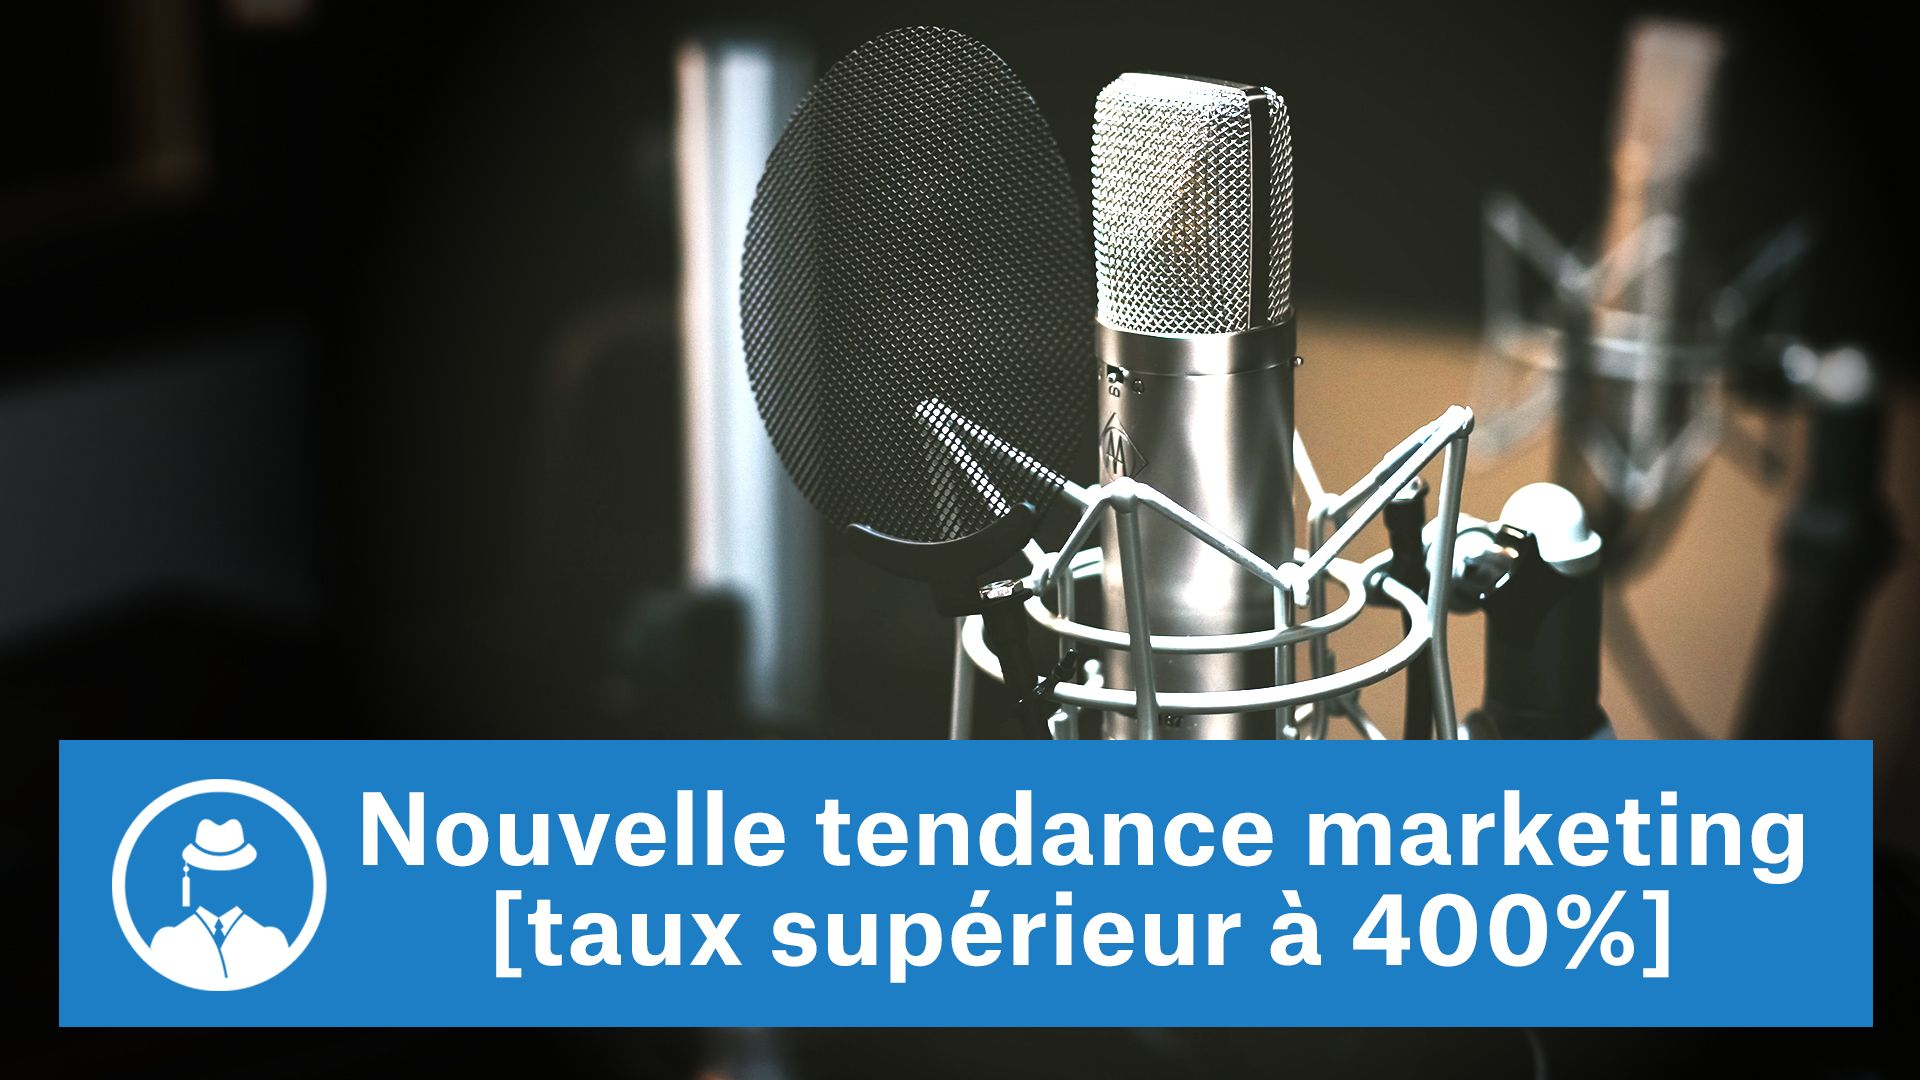 Nouvelle tendance marketing (taux supérieur à 400%) #GrowthHacking #WebMarketing #FormationGrowthHacking #CentreDeFormationFrance #TunnelAARRR #AARRR #SocialMedia #CommunityManagement #SEO #MarketingDigital #SiteWeb